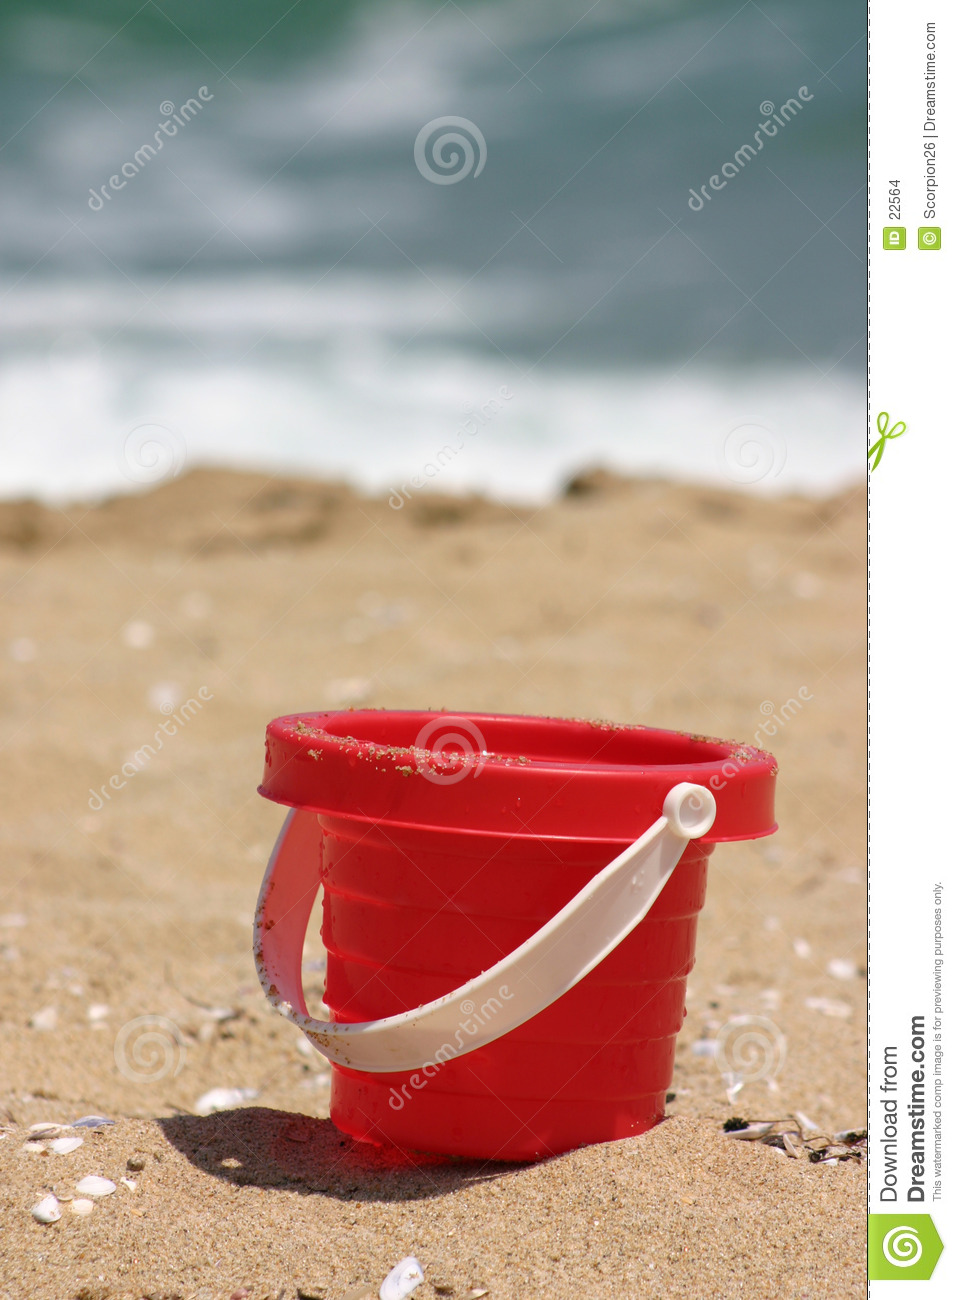 Red Sand Toy on the Beach